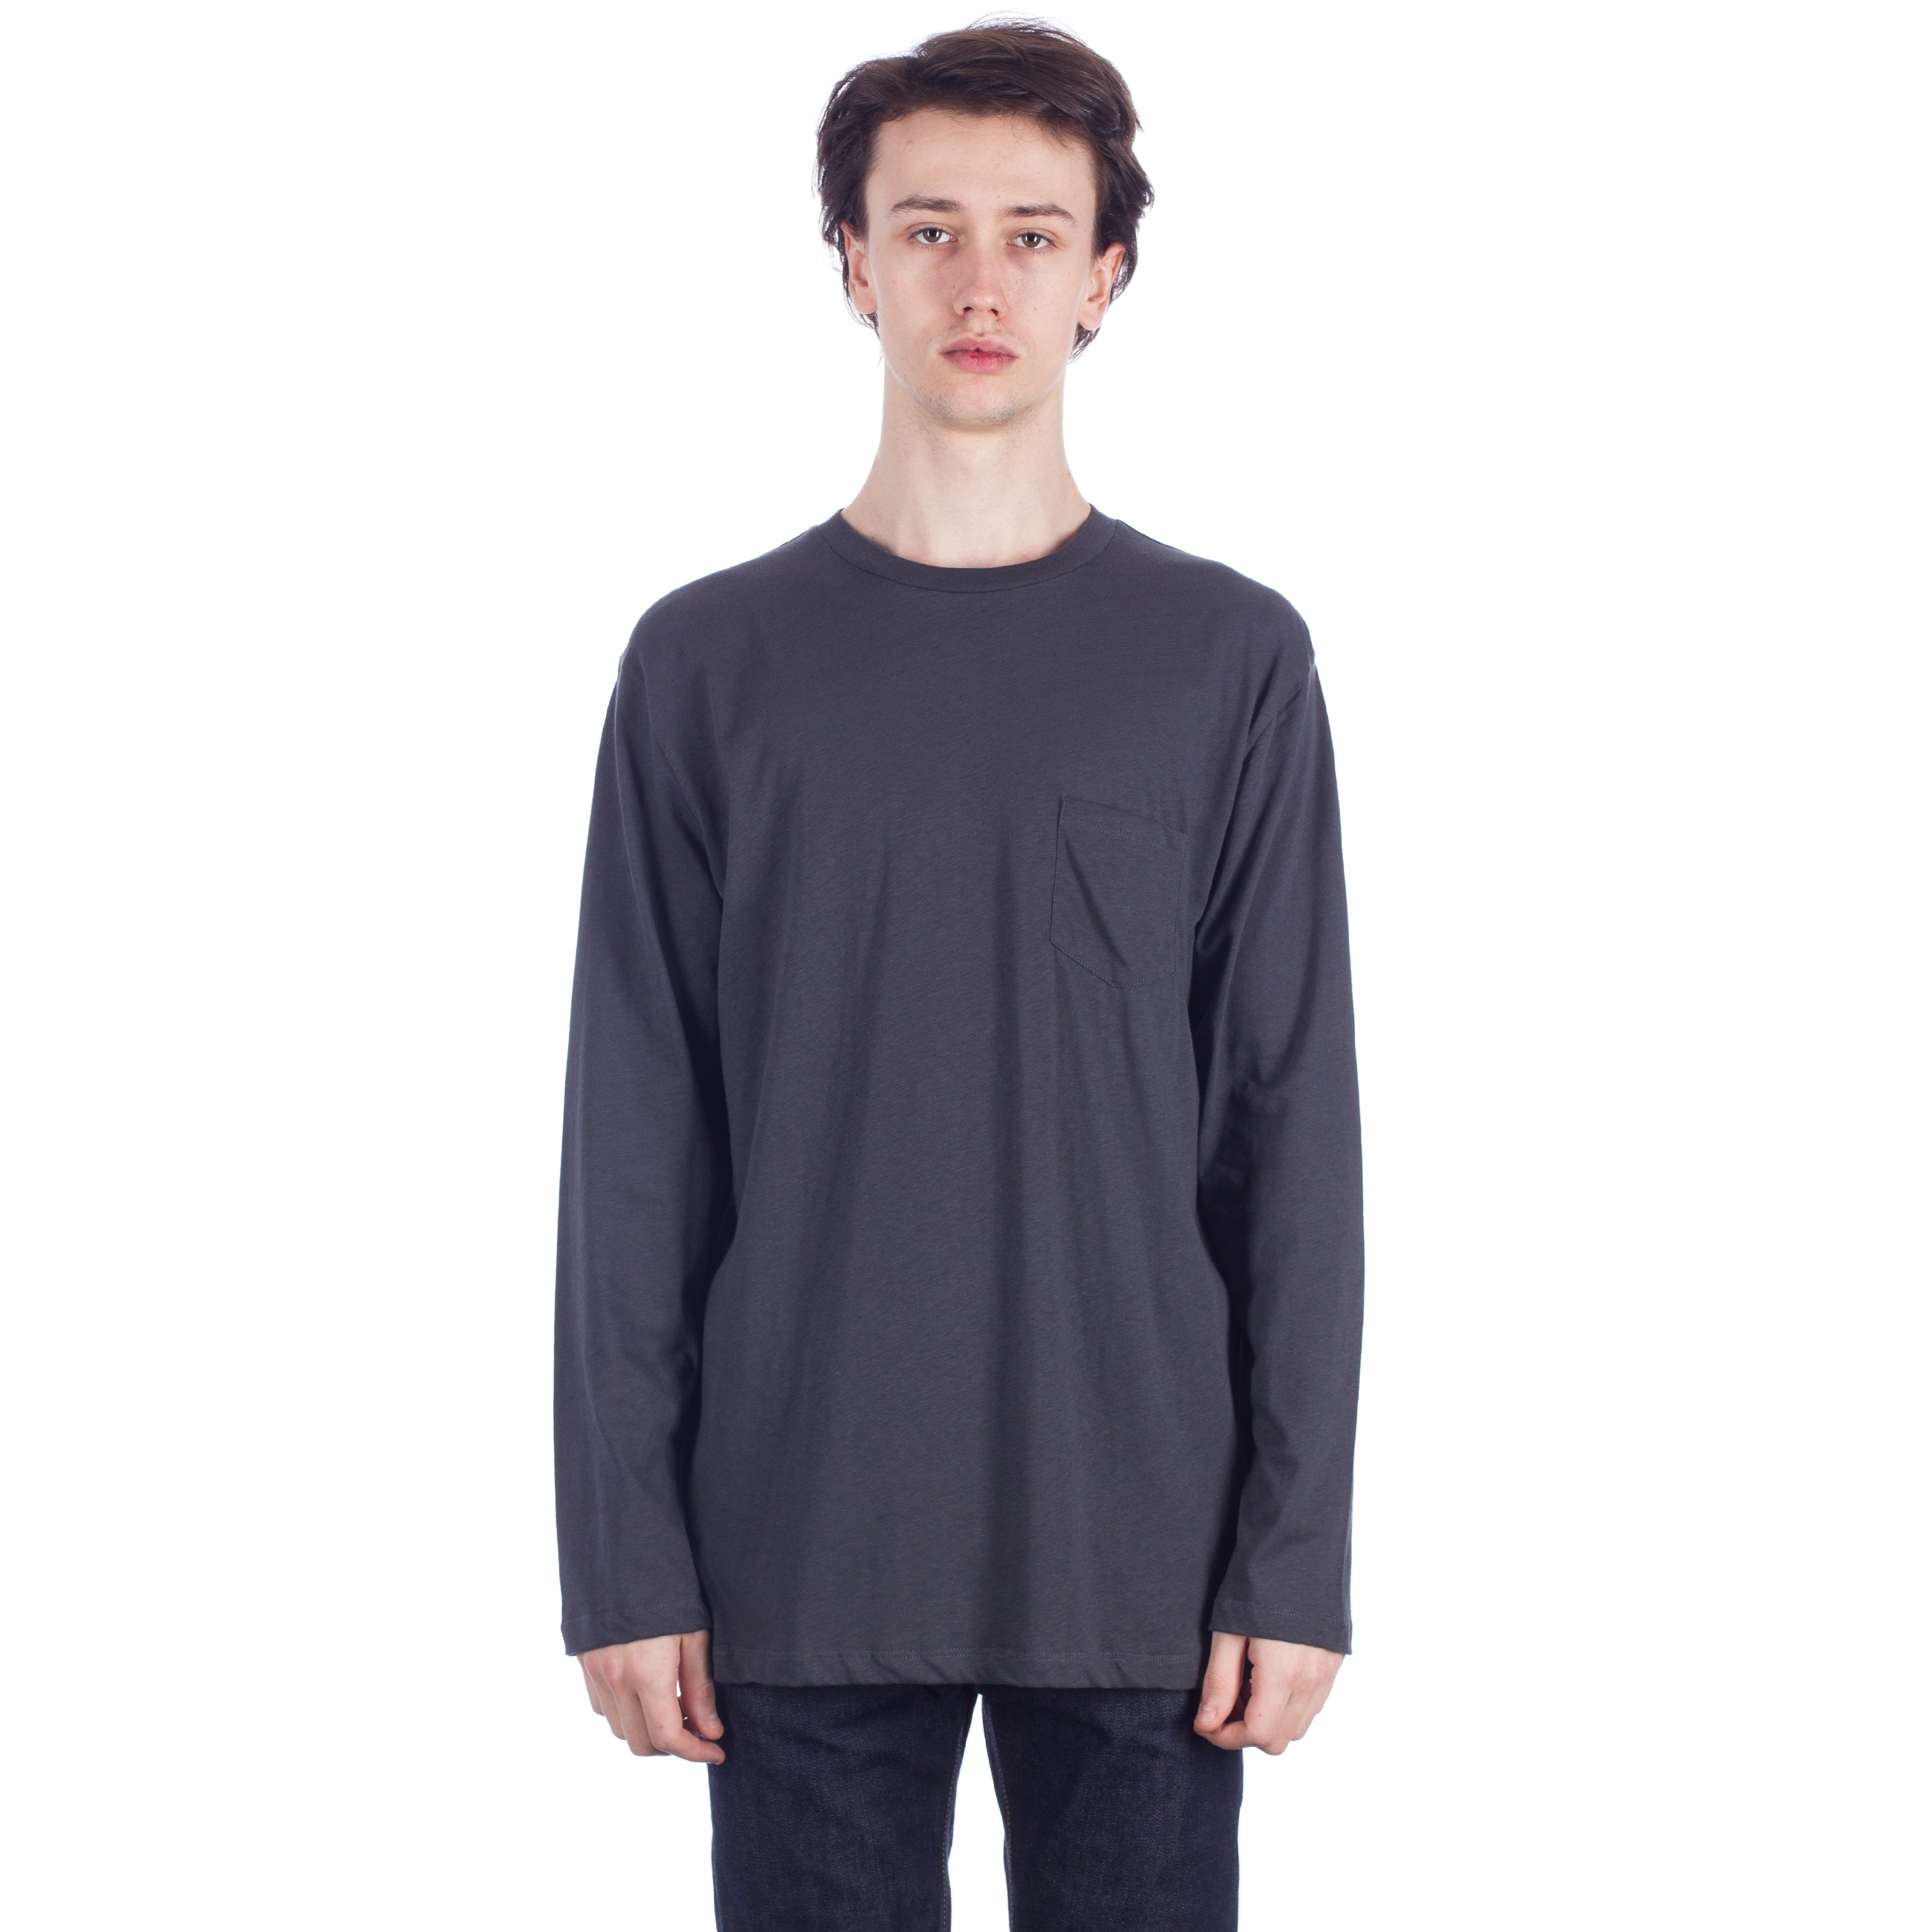 138bc169 Sunspel Relaxed Long Sleeve Pocket T-Shirt (Charcoal)